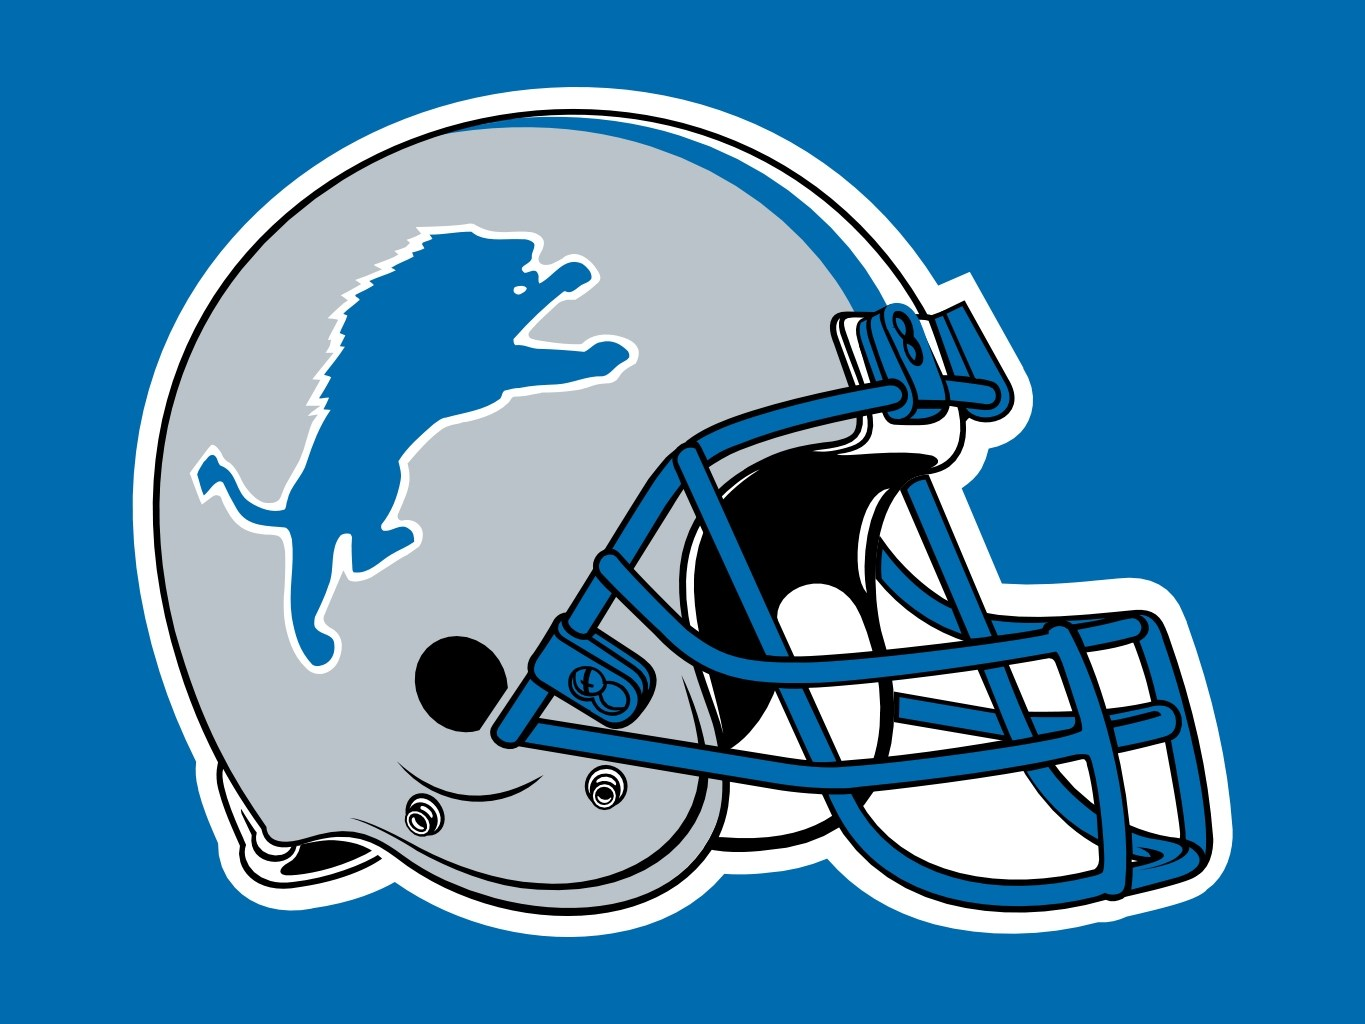 Detroit lions clipart free jpg library download Detroit lions clipart 4 » Clipart Portal jpg library download